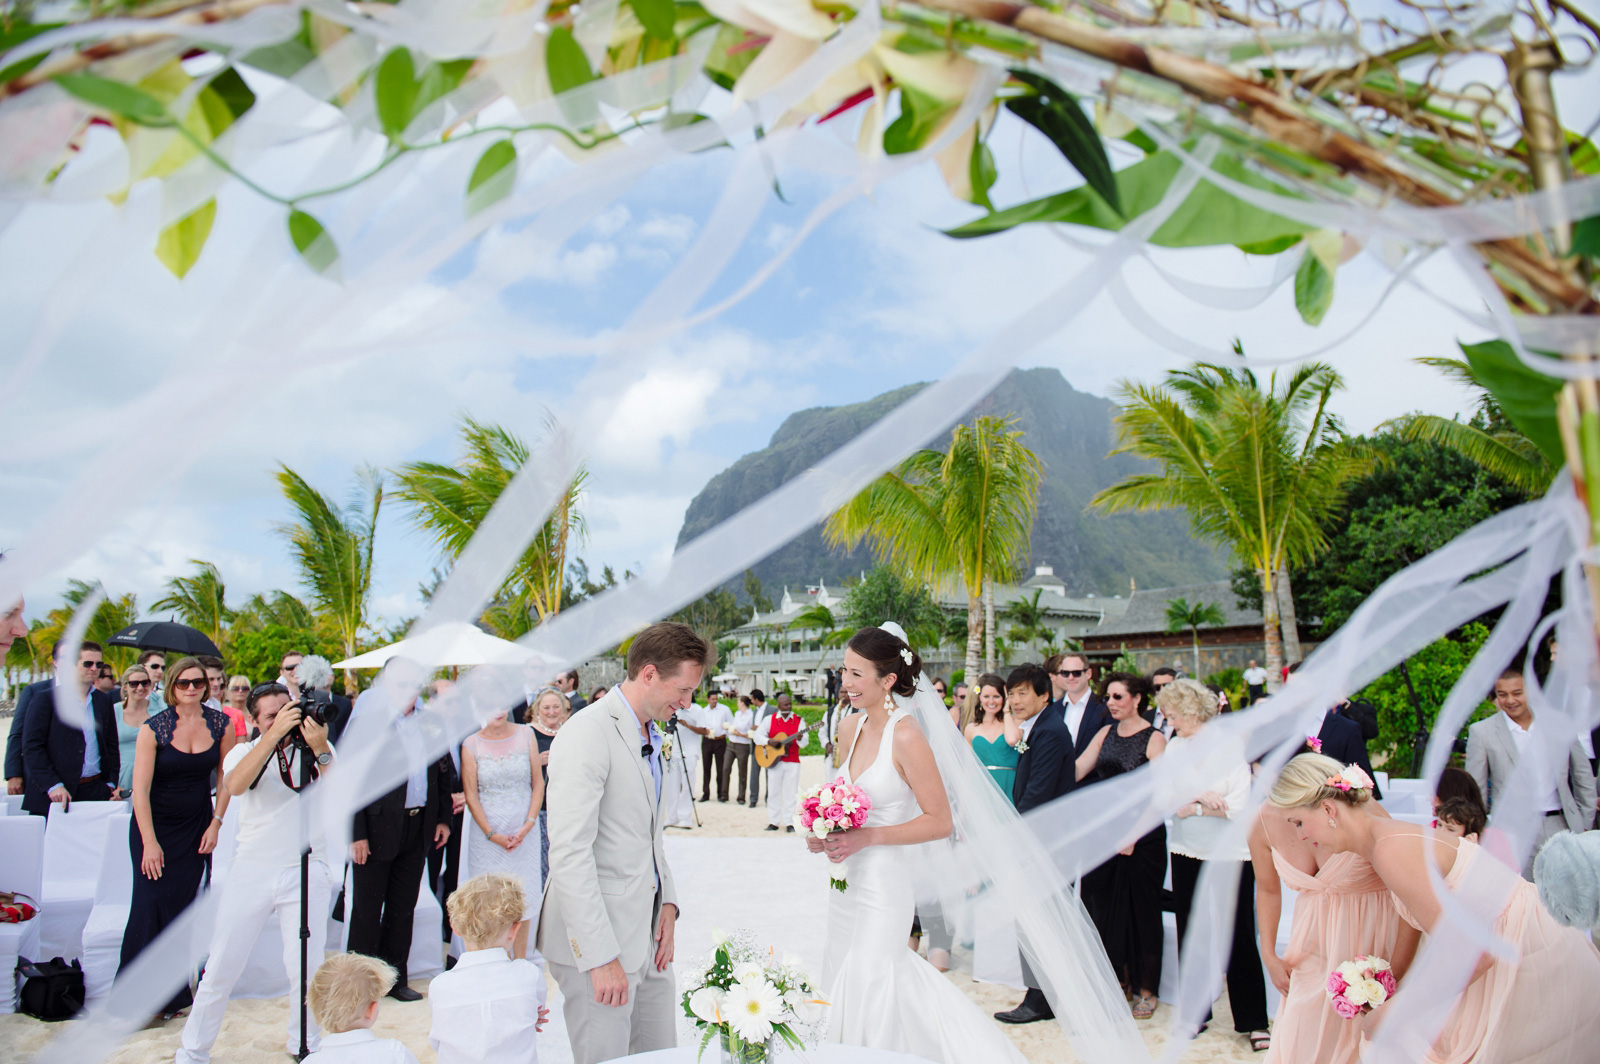 windy beach wedding